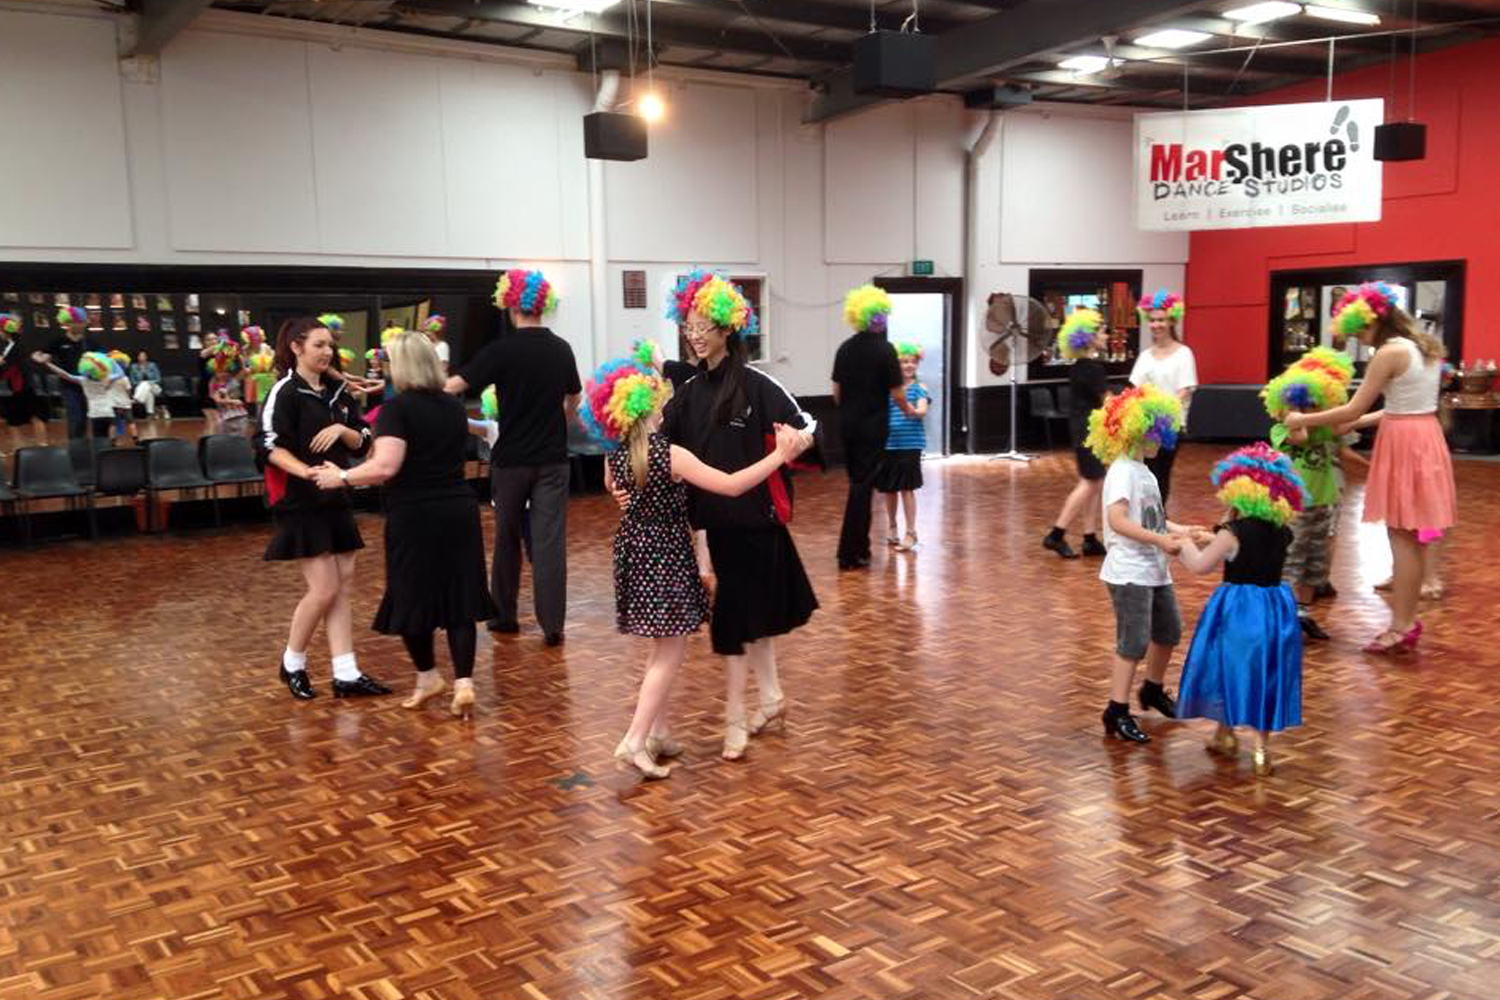 MarShere Ferntree Gully offers classes for all levels from beginners to advanced